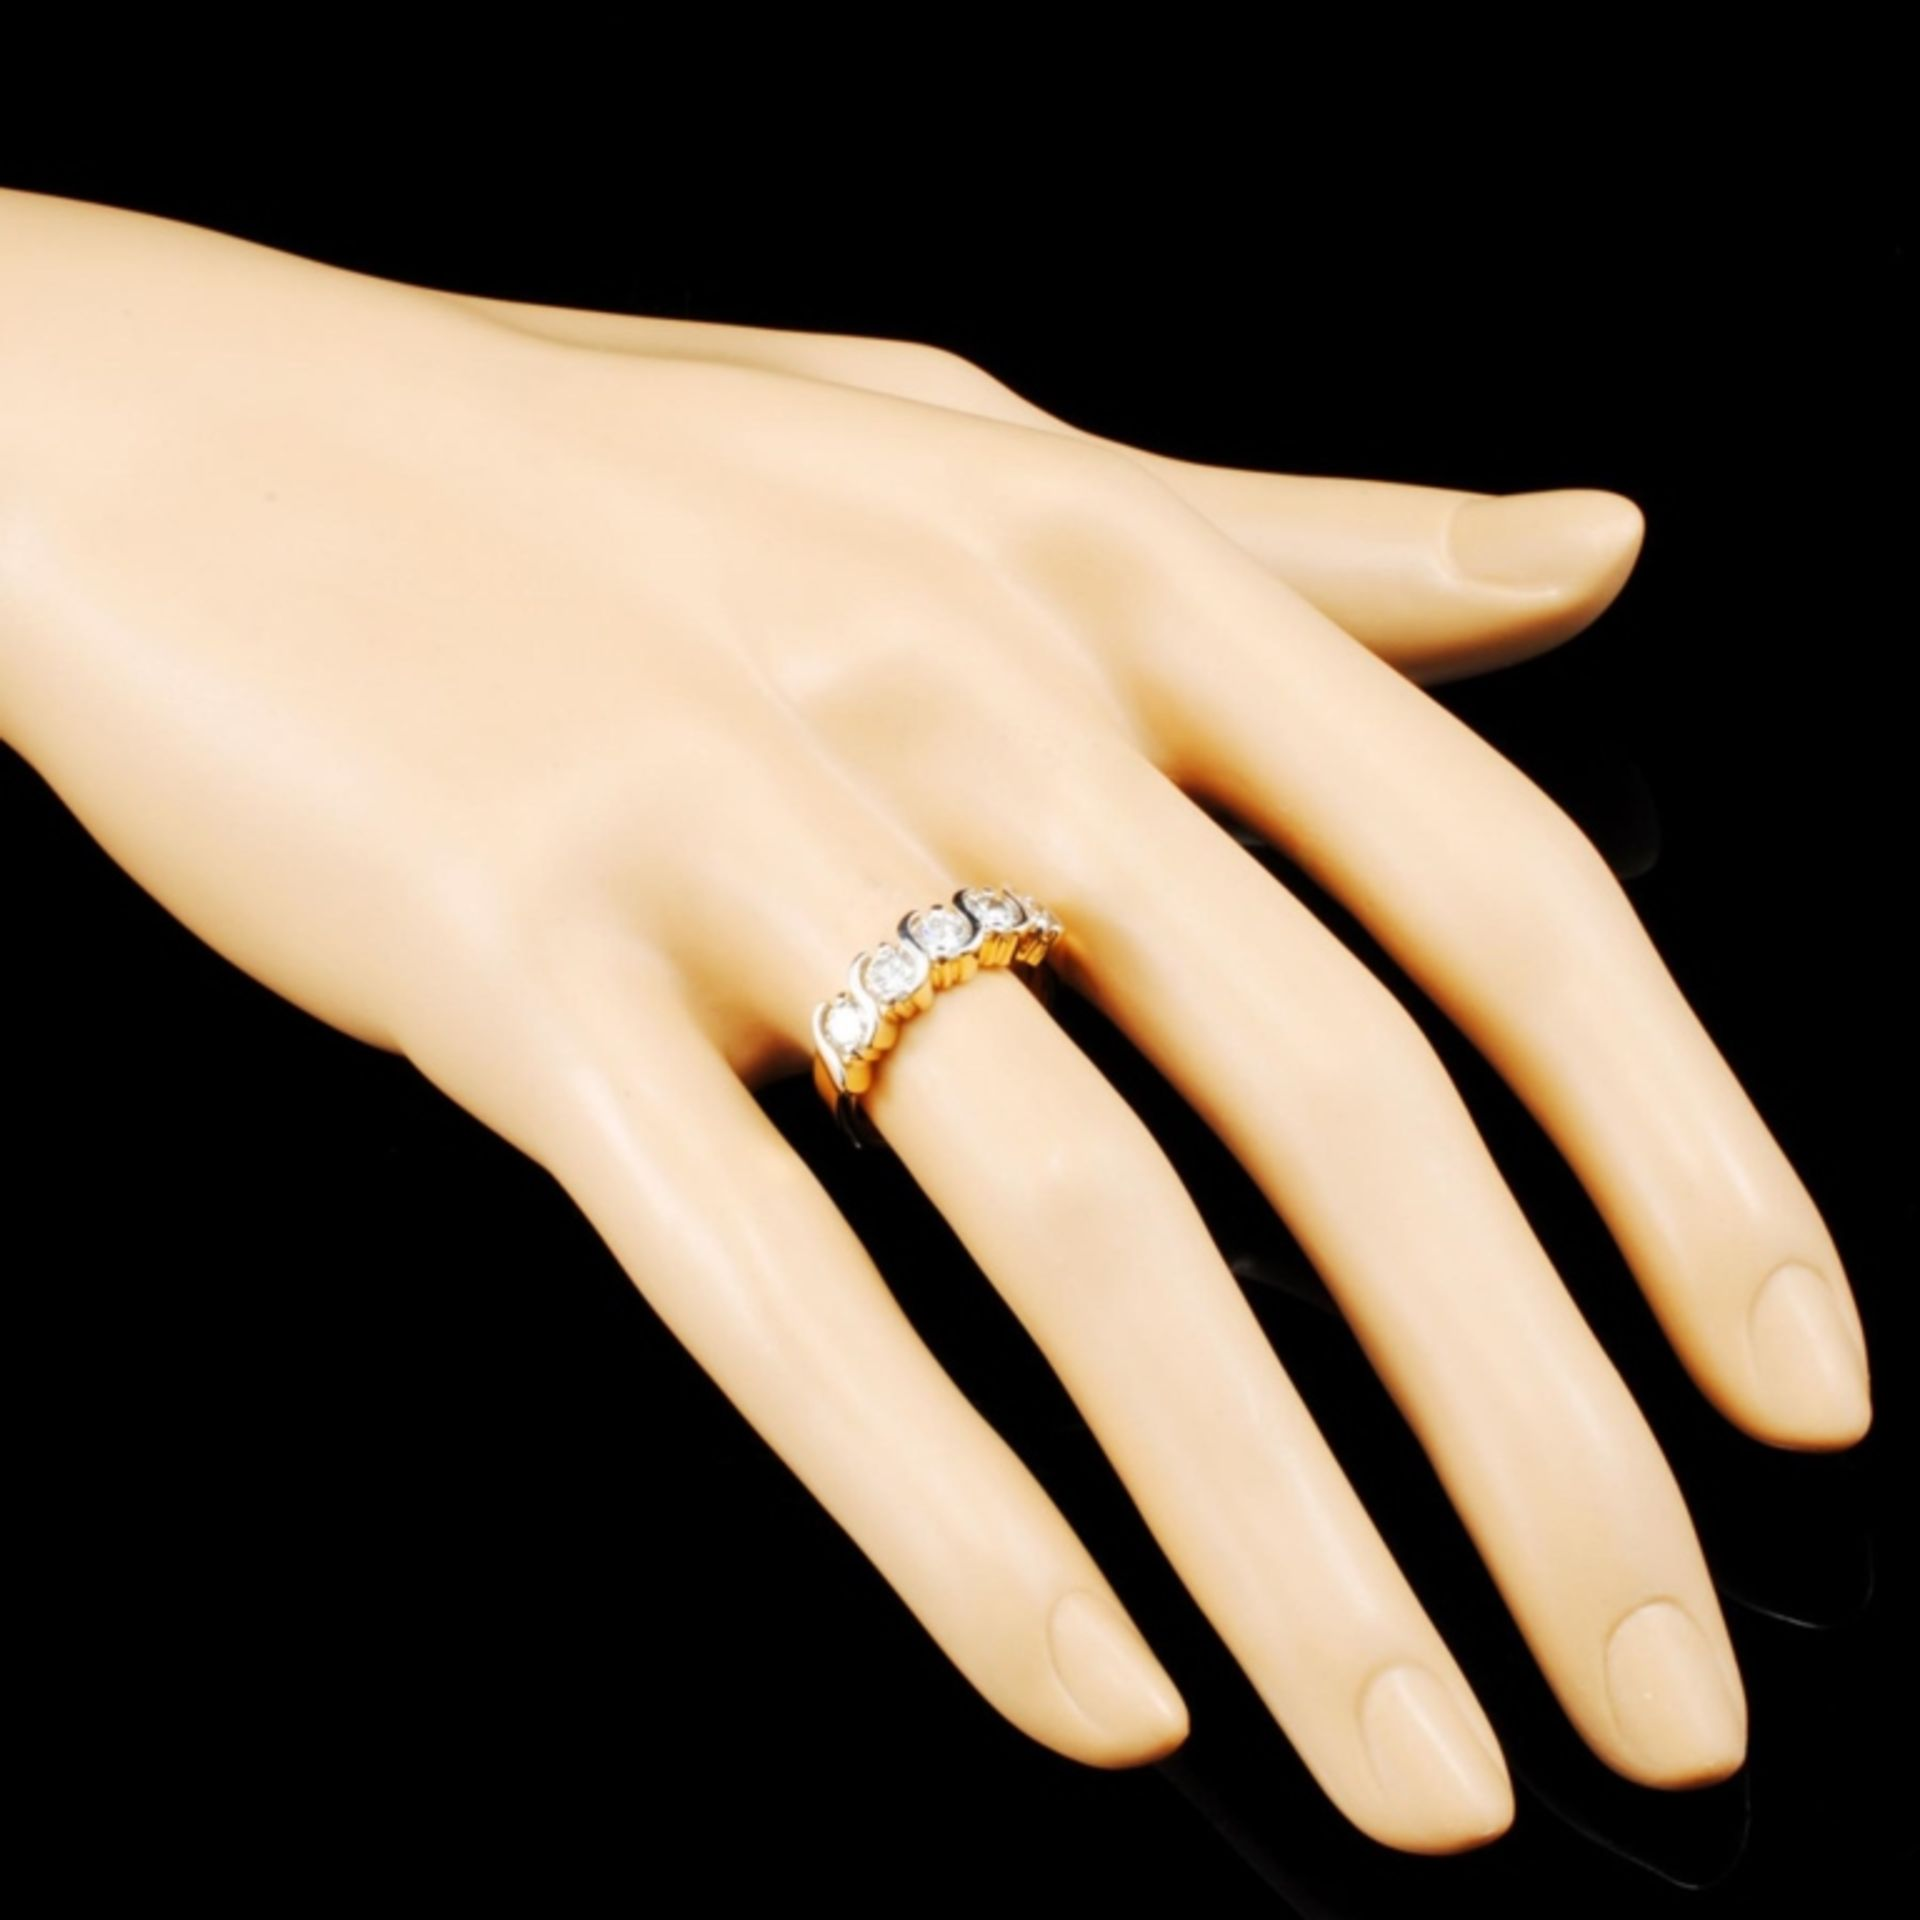 14K Gold 1.20ctw Diamond Ring - Image 3 of 5